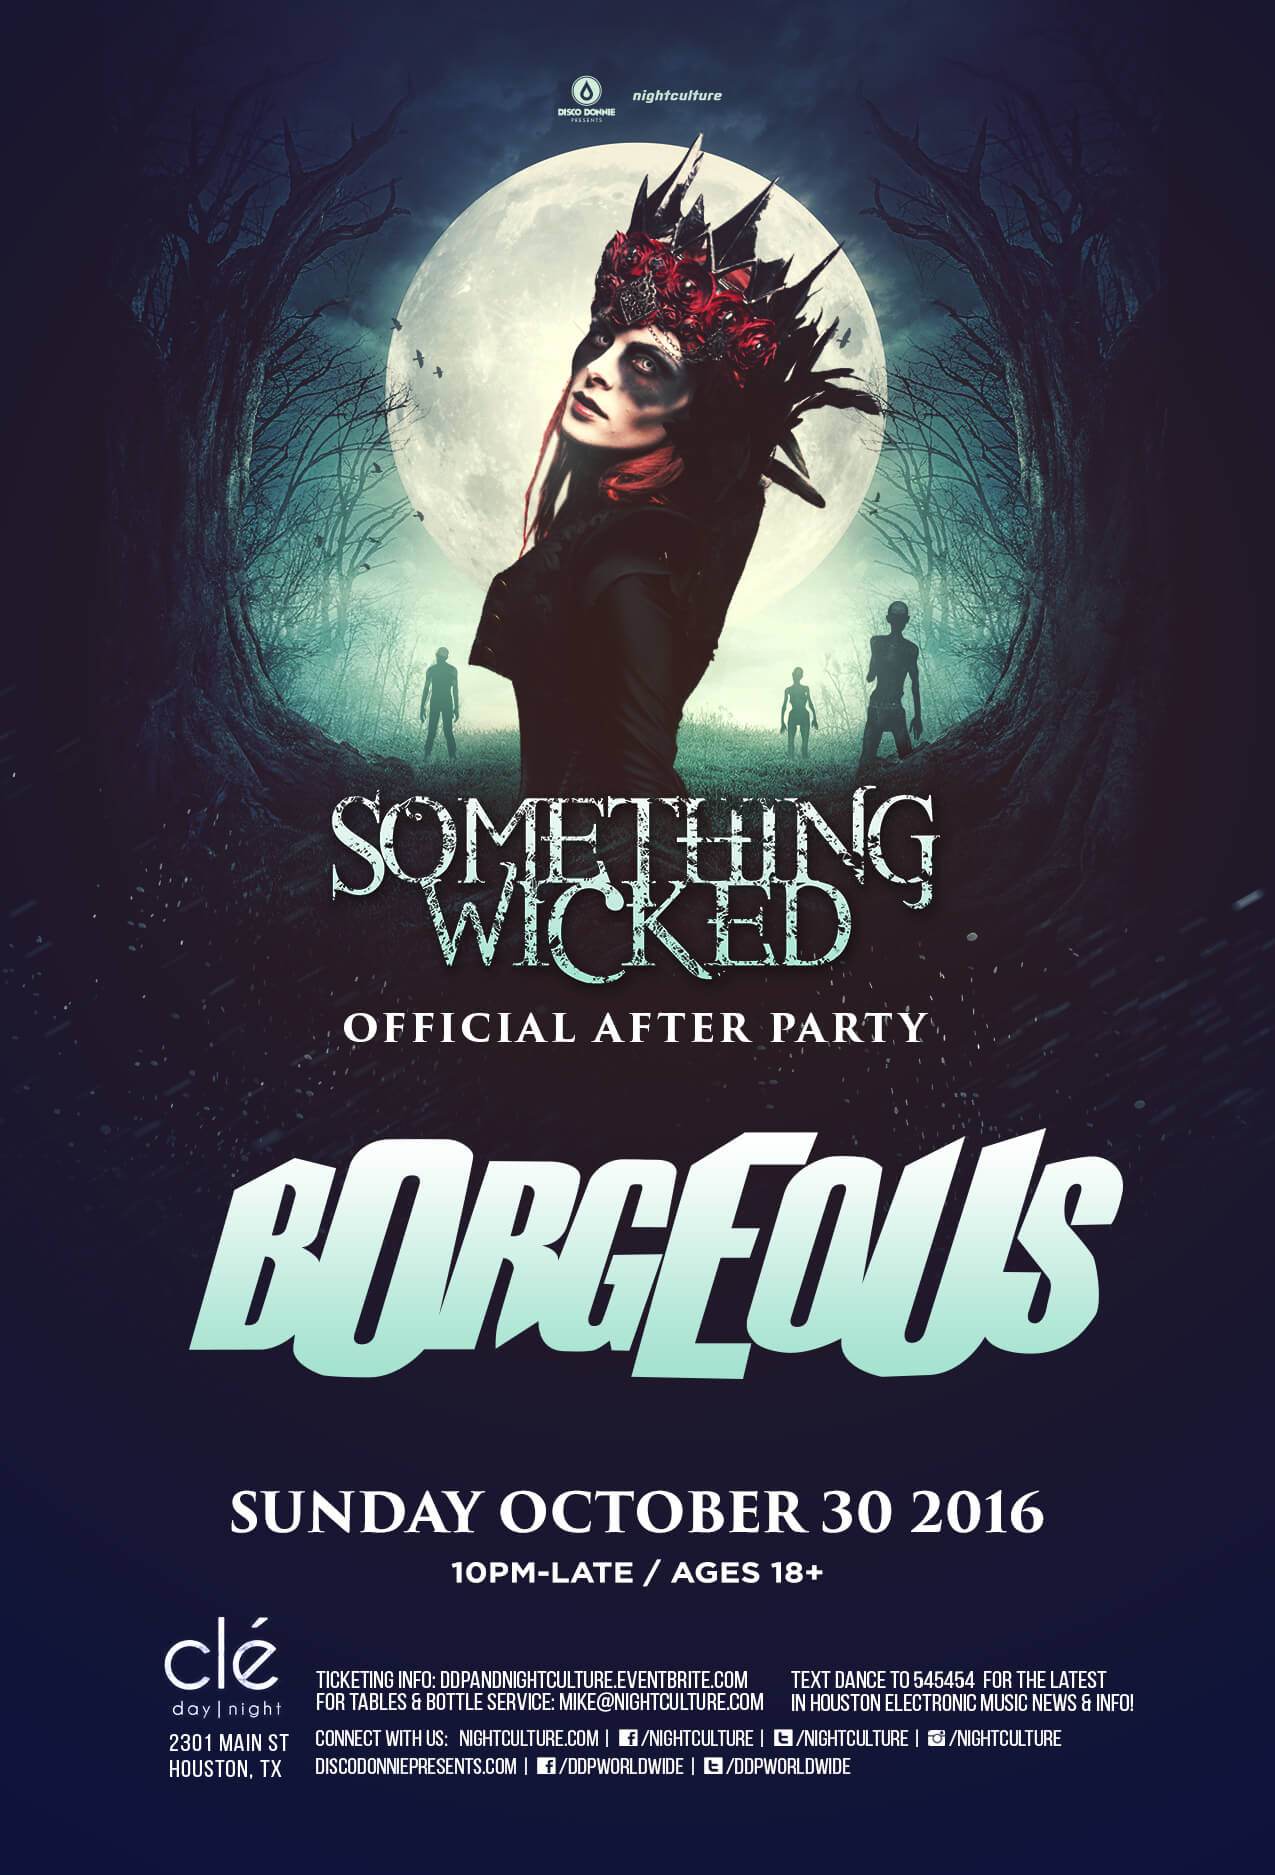 Borgeous at Cle in Houston